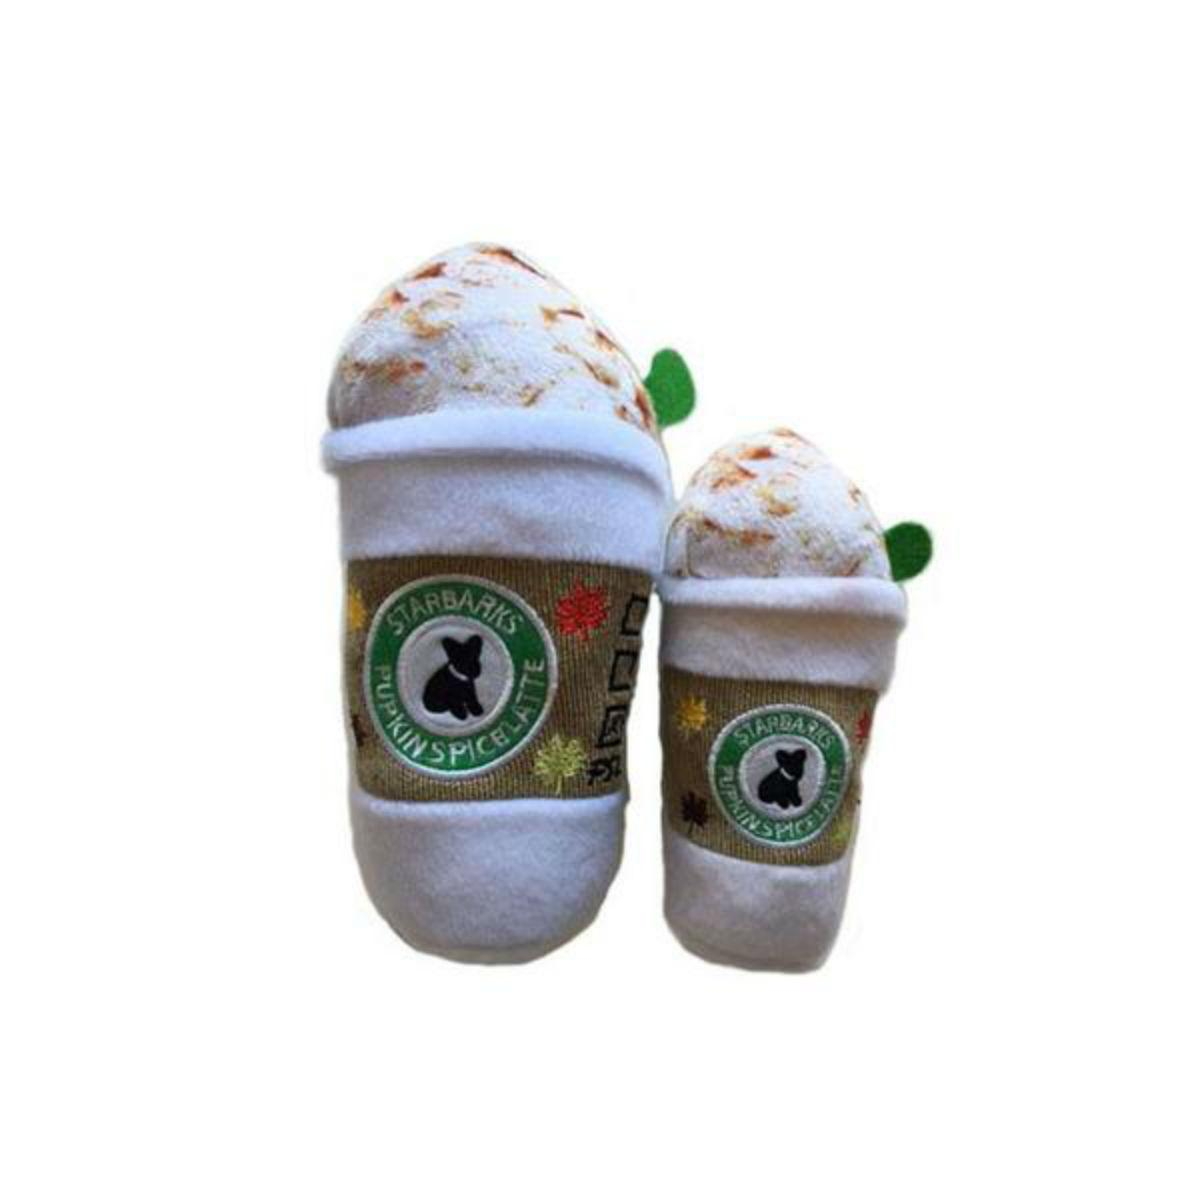 Starbarks Pupkin Spice Latte Plush Dog Toy